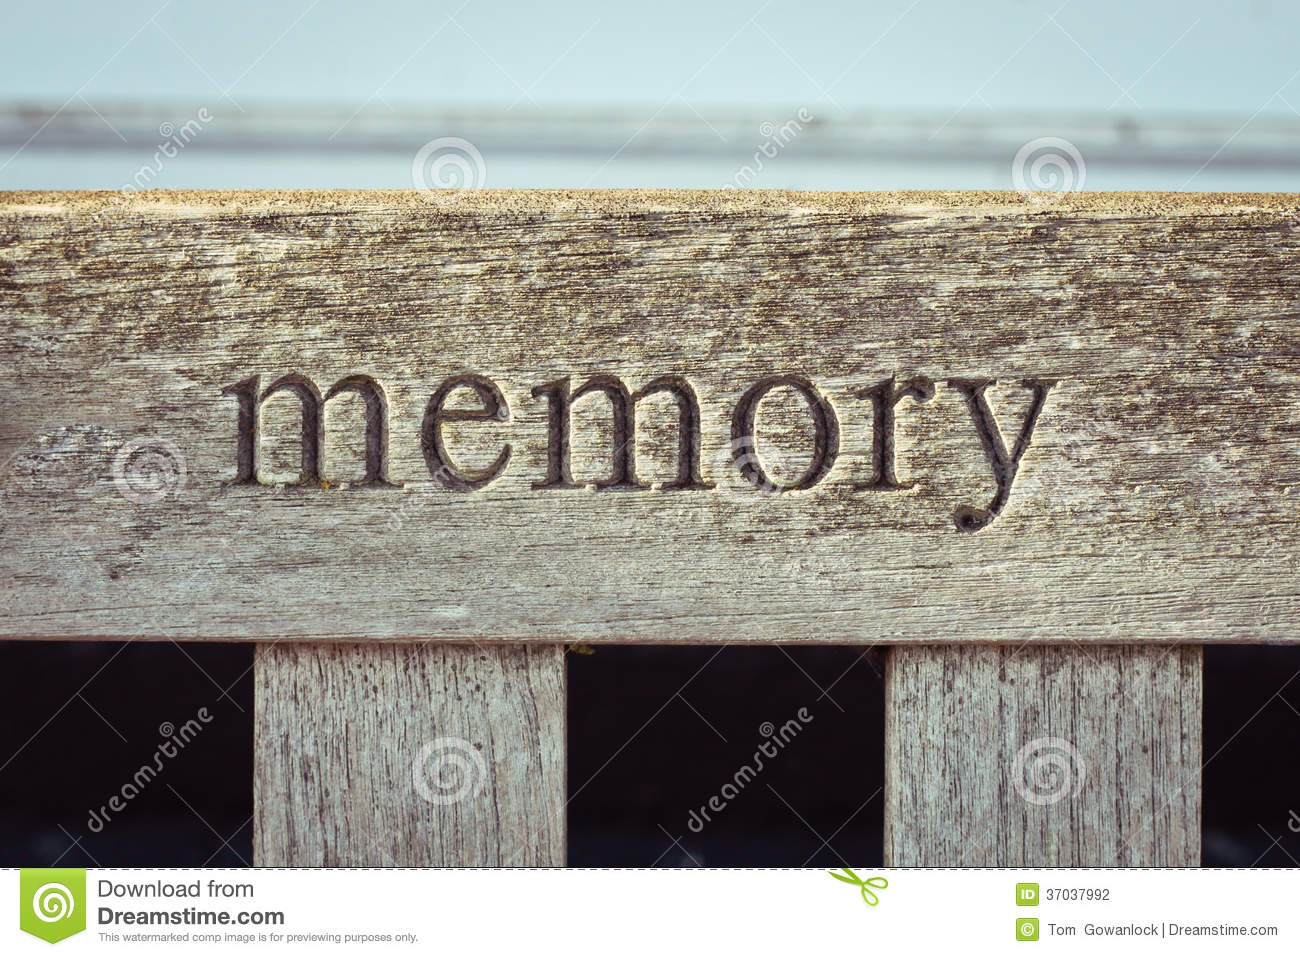 Memory stock photo. Image of background, memory, life ...